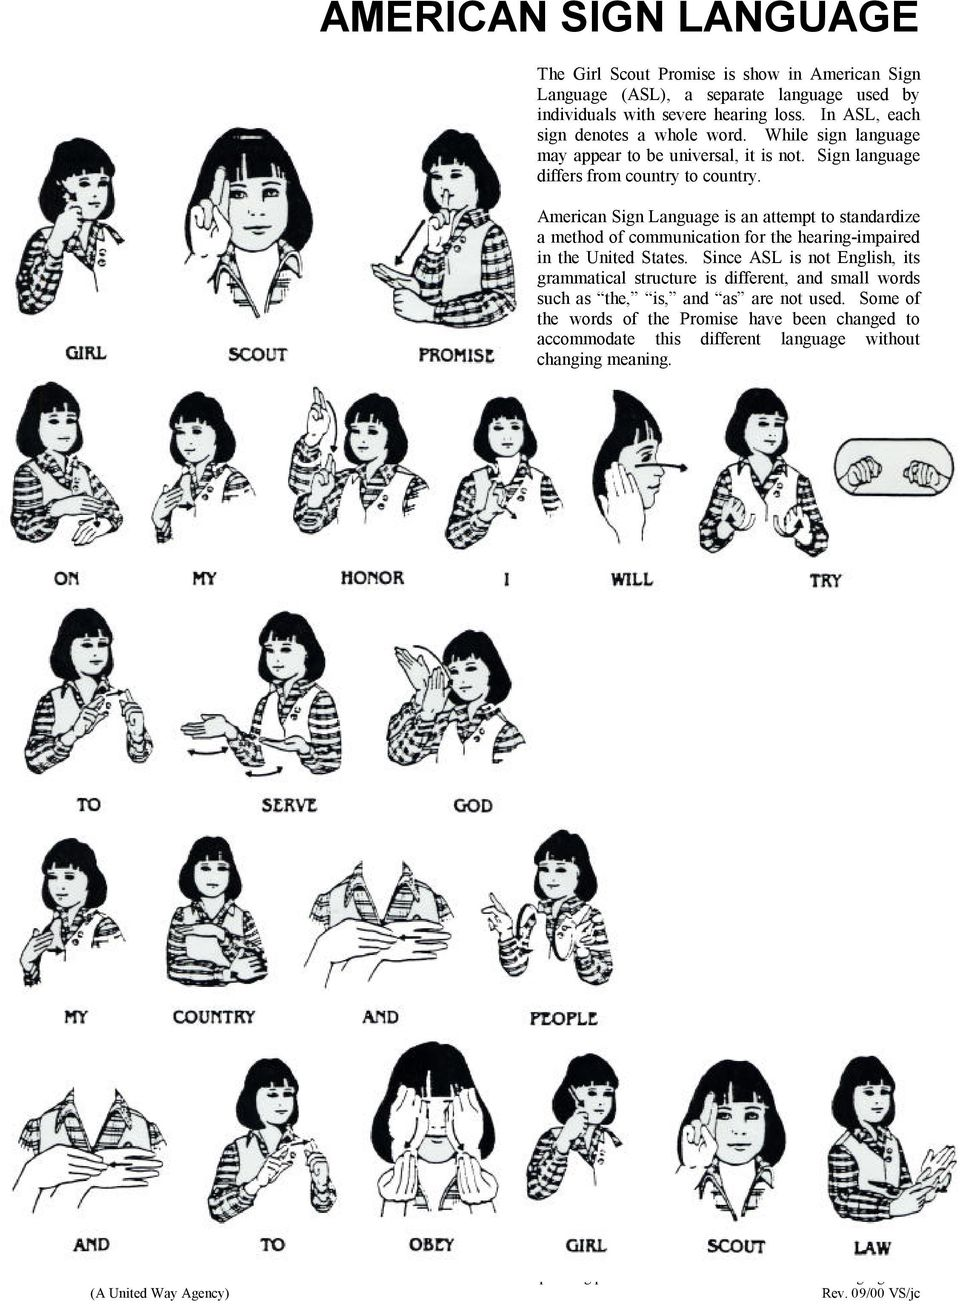 image regarding Cub Scout Motto in Sign Language Printable identified as THE Quite a few LANGUAGES OF THE Woman SCOUT Warranty AND Regulation - PDF